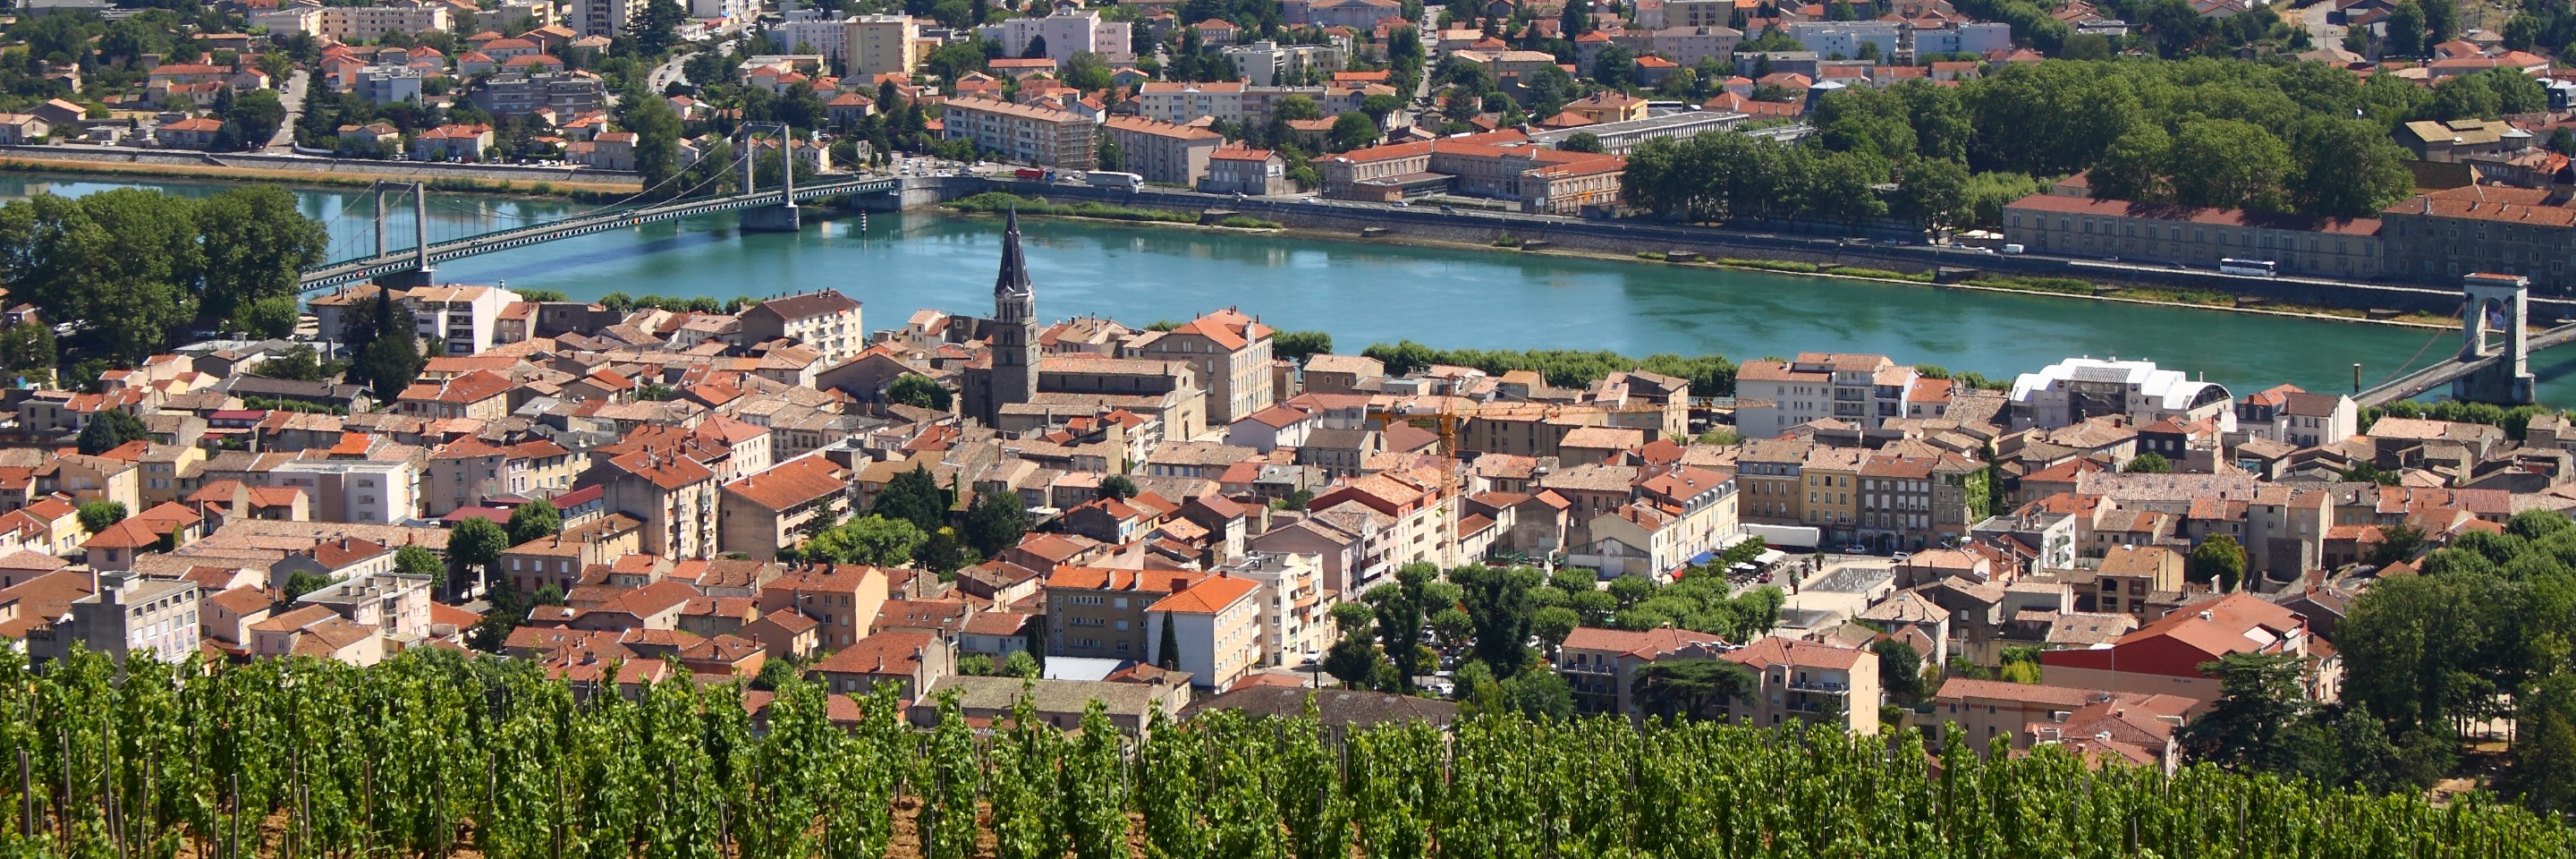 Burgundy & Provence with 2 Nights in Paris, 3 Nights in Venice & 3 Nights in Rome for Wine Lovers (Northbound)